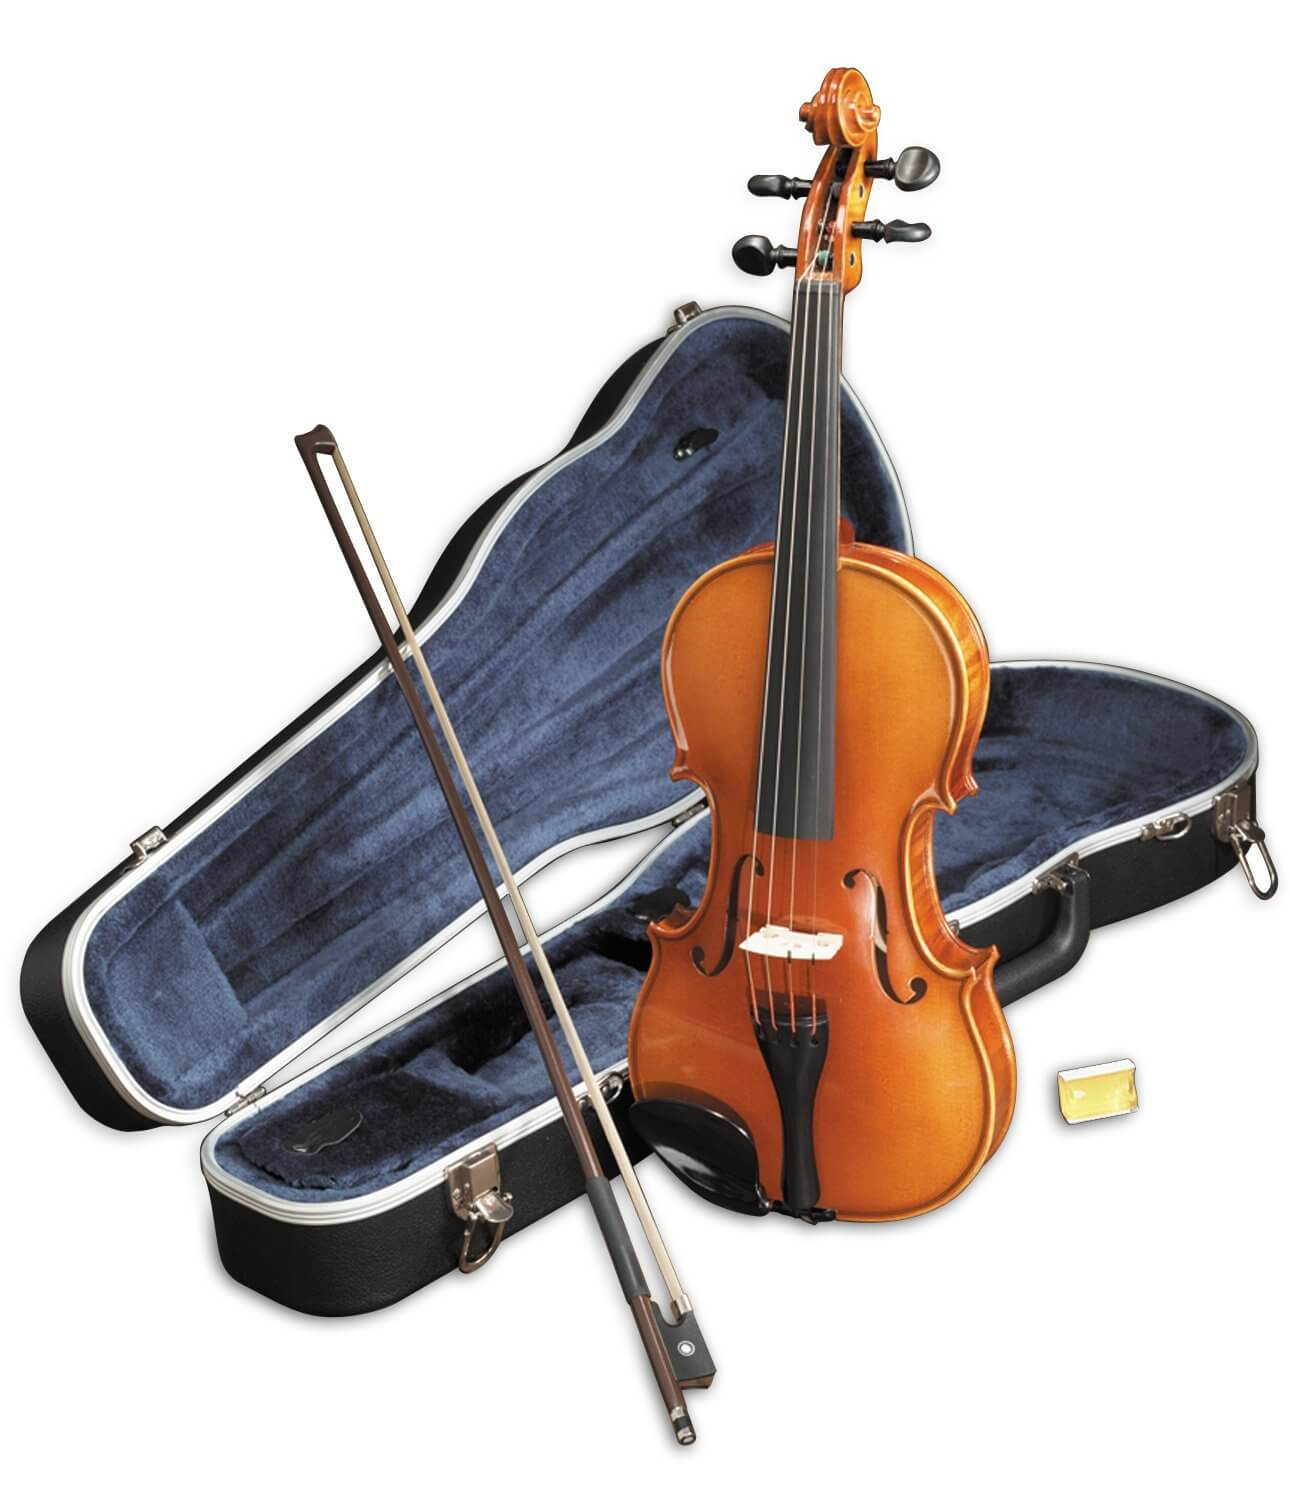 5 Best Knilling Violin Reviews for 2019